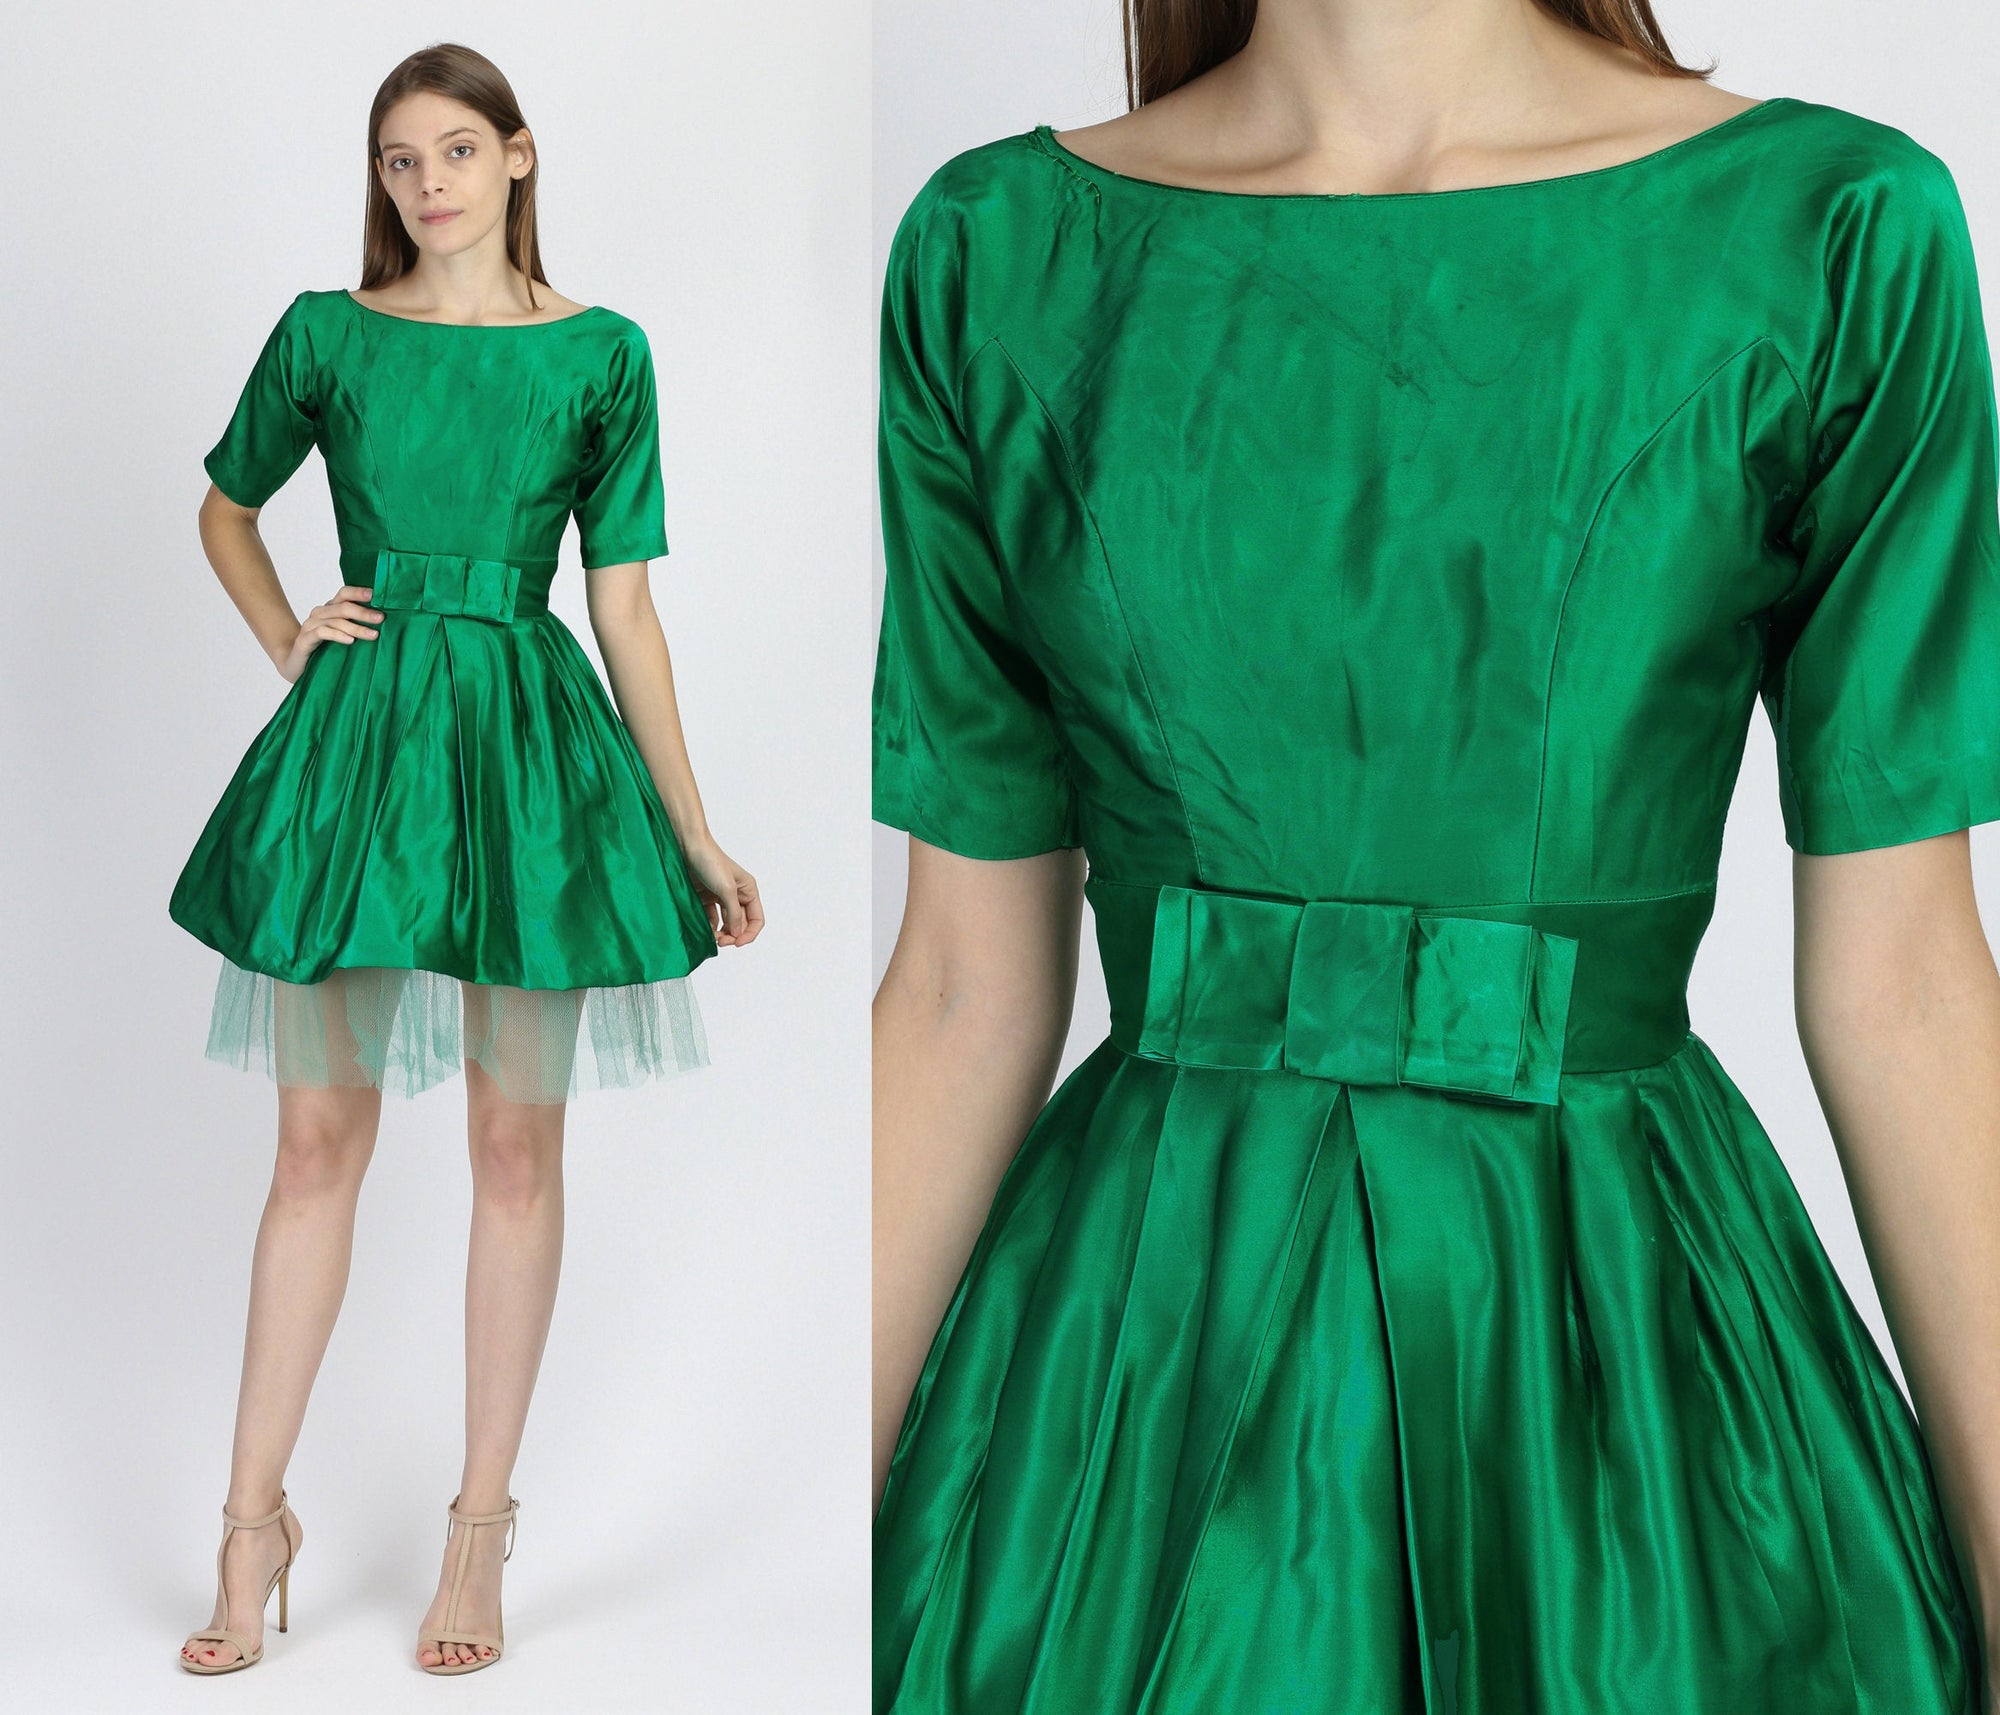 Vintage 1950s Green Satin Party Dress - Extra Small